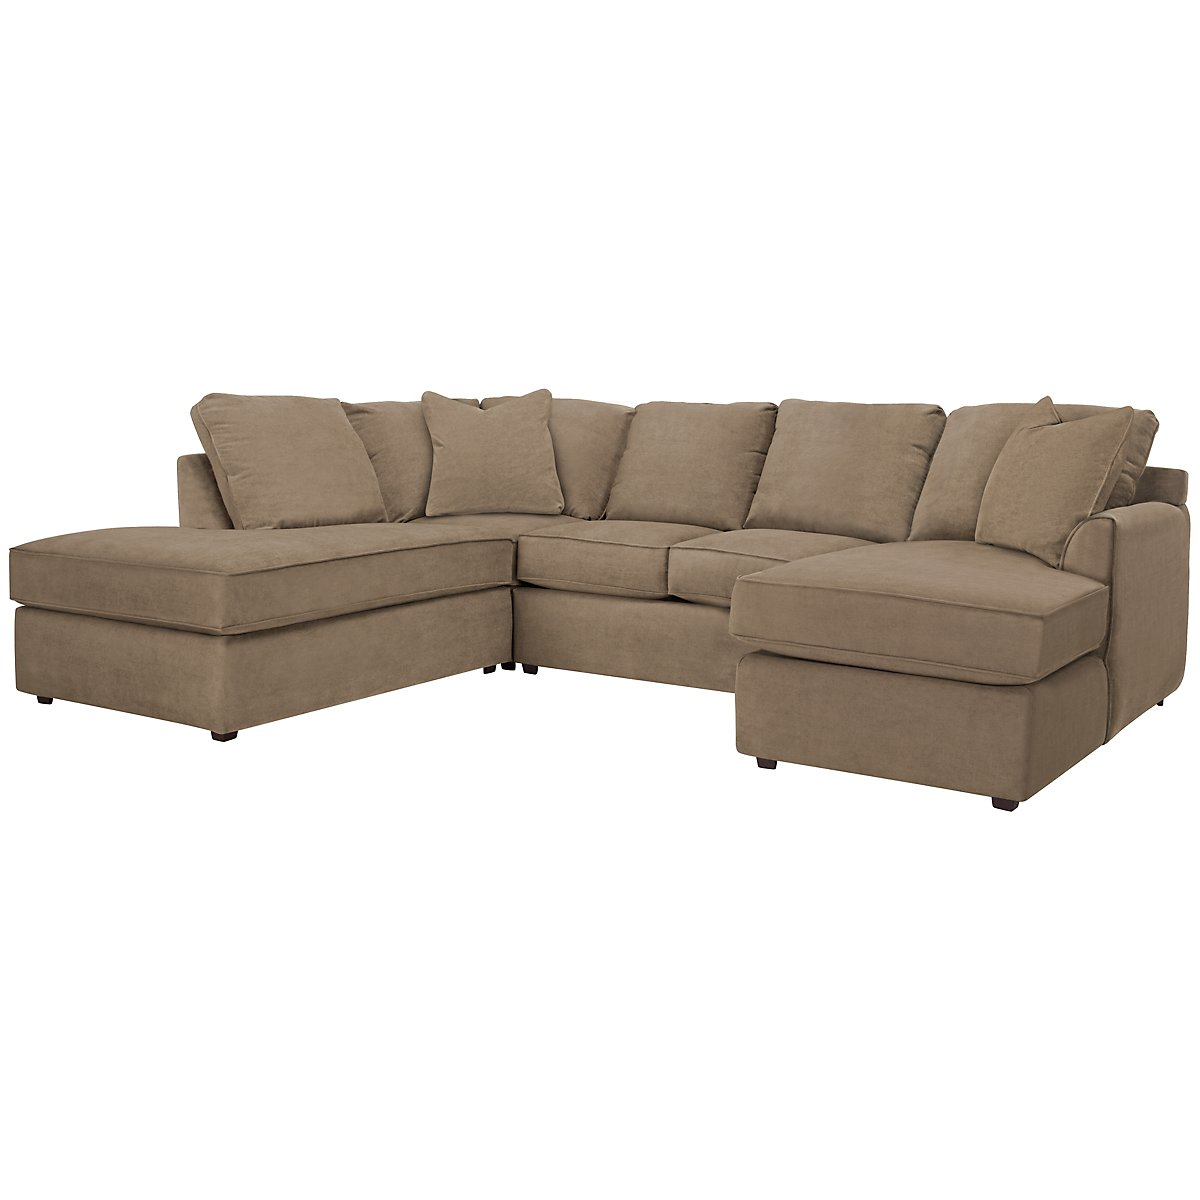 Express3 Light Brown Microfiber Small Left Bumper Sectional